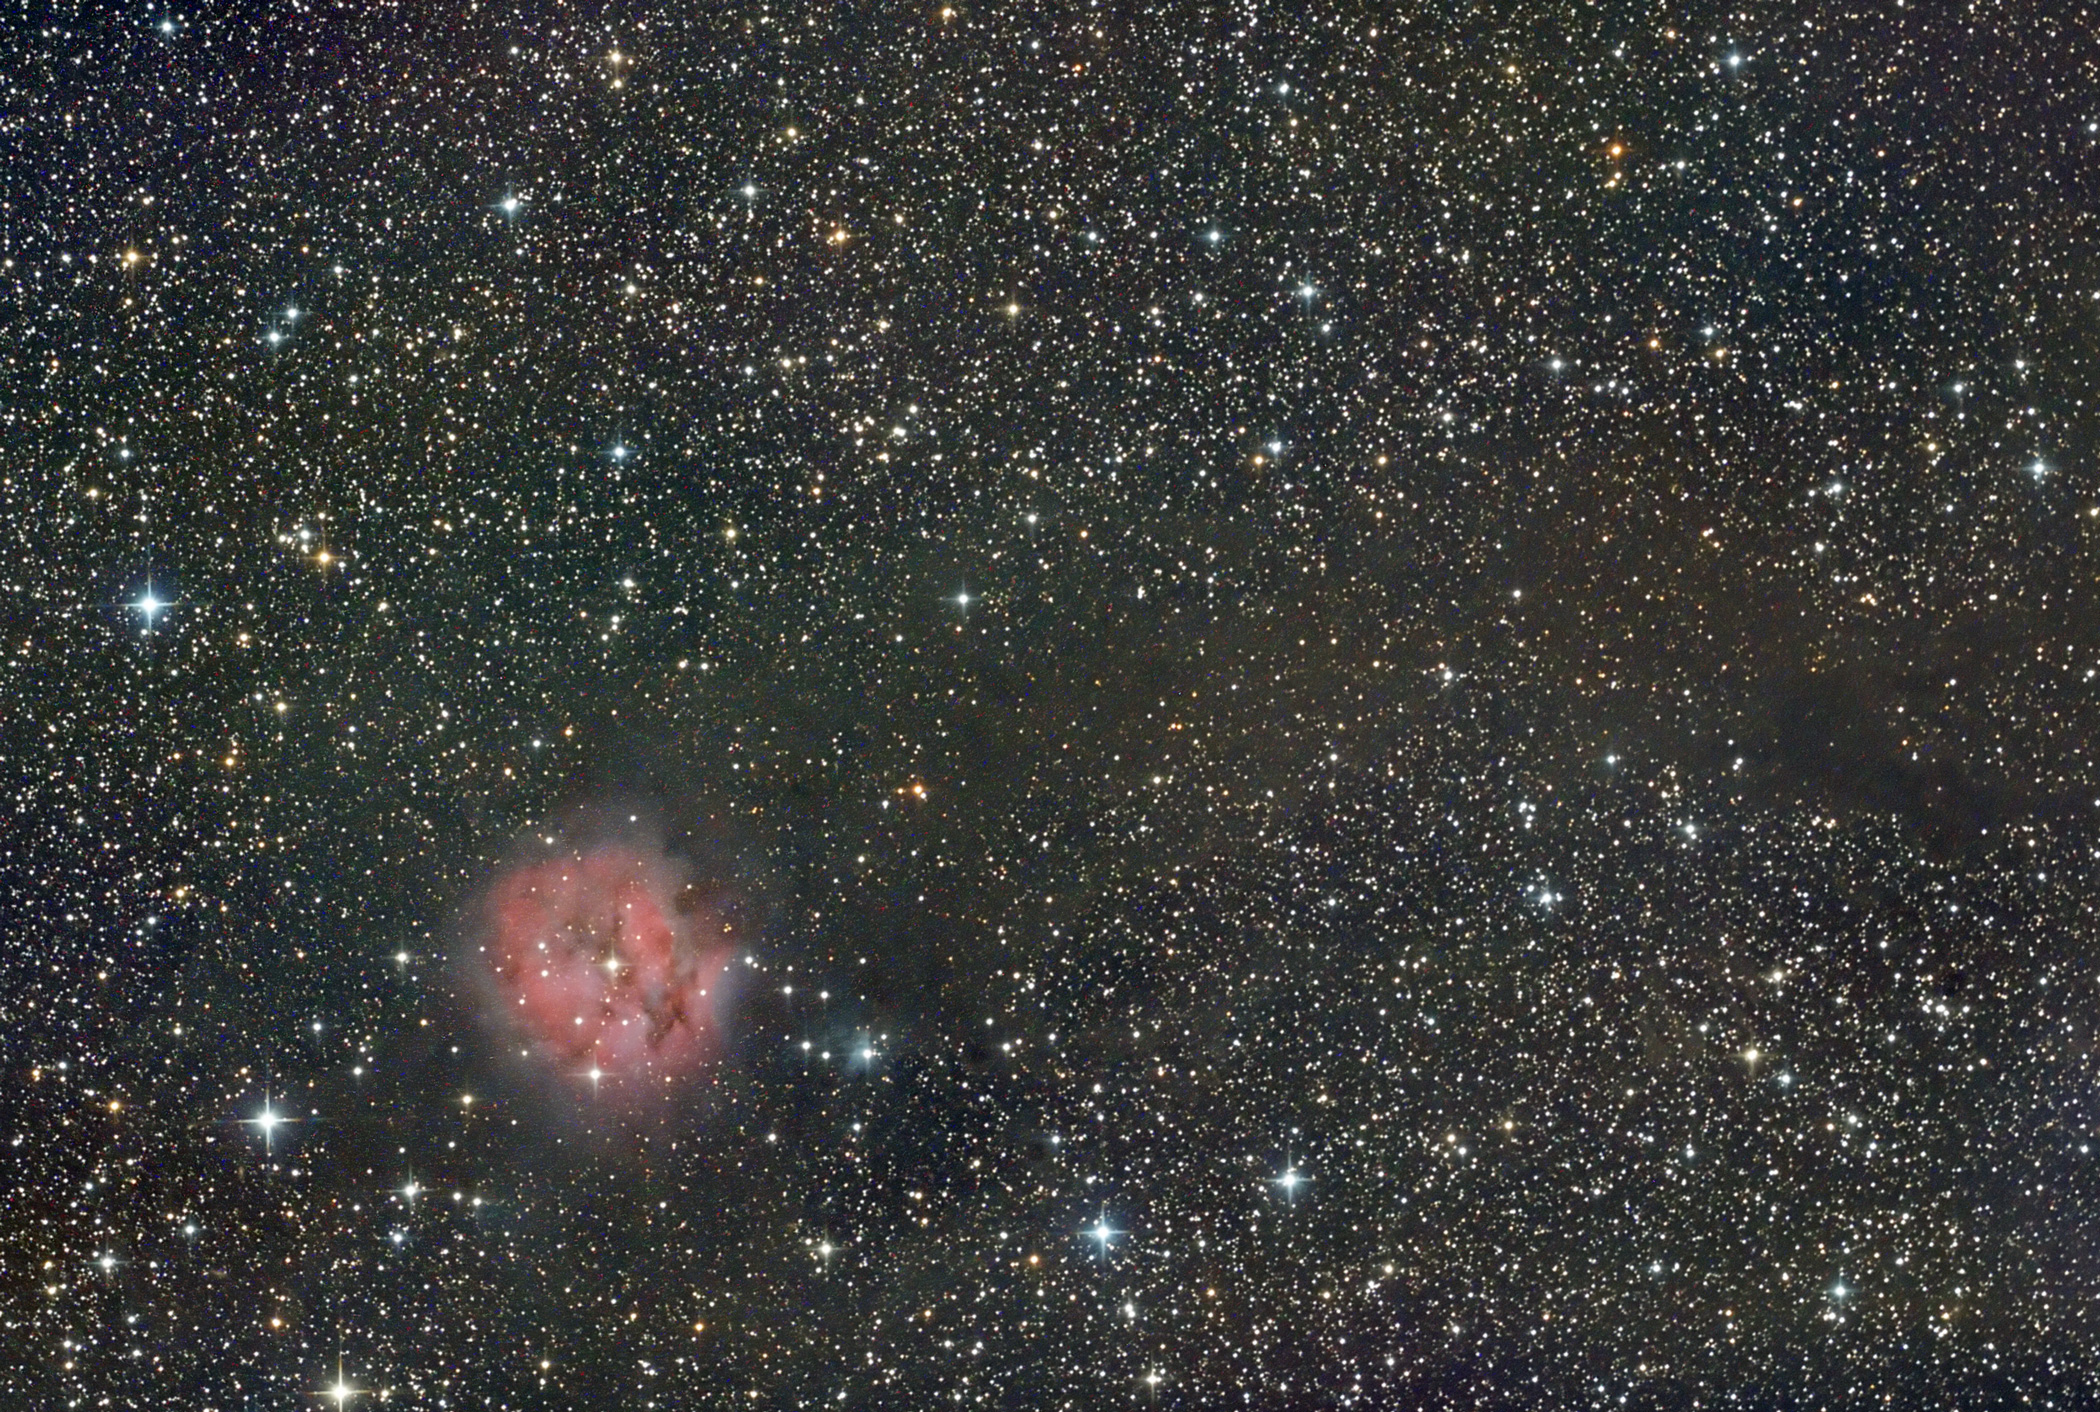 Ic 5146 The Cocoon Nebula. Shawn Nielsen 2013